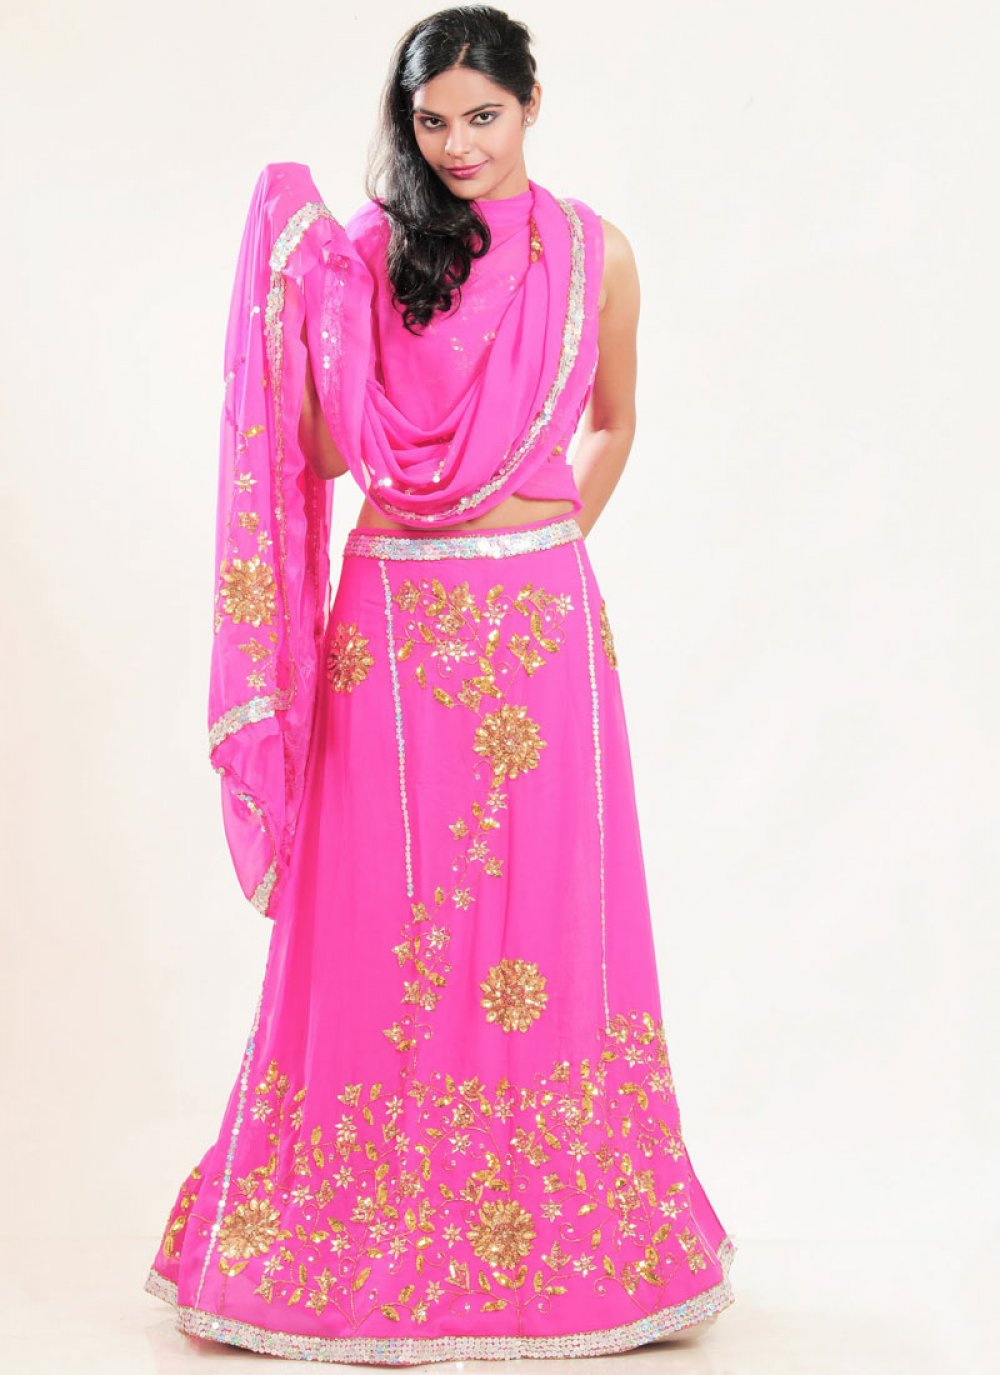 Faux Georgette Fancy Lehenga Choli in Hot Pink